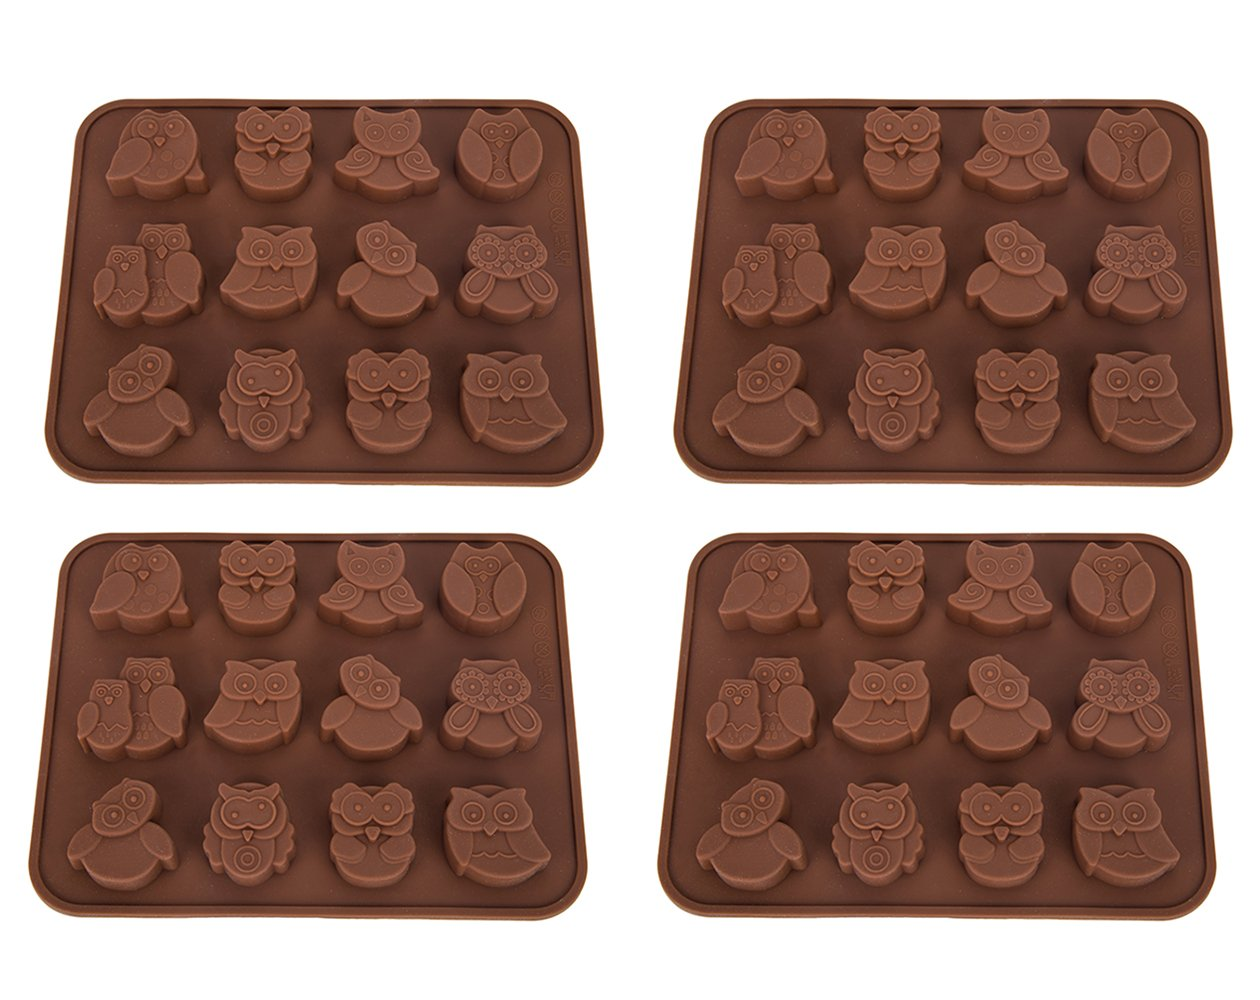 Tebery12 Owls Silicone CakeMold, 4 Piece Non-StickChocolate Jelly Candy Kids Gift Baking Craft Mold